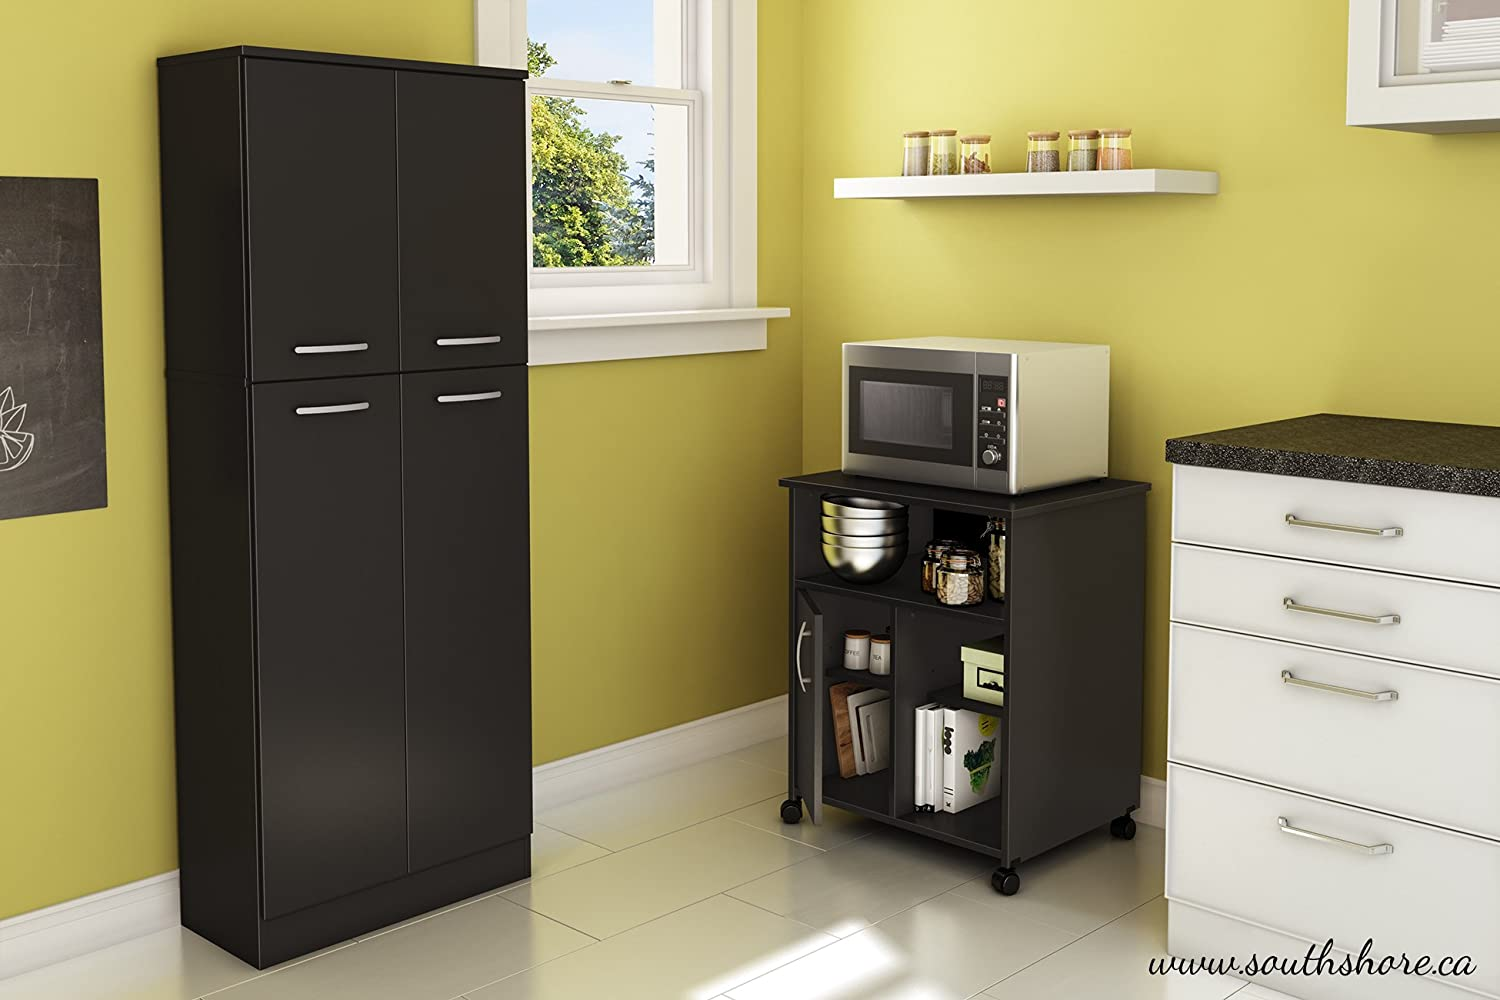 Amazon.com - South Shore Fiesta Microwave Cart with Storage on ...